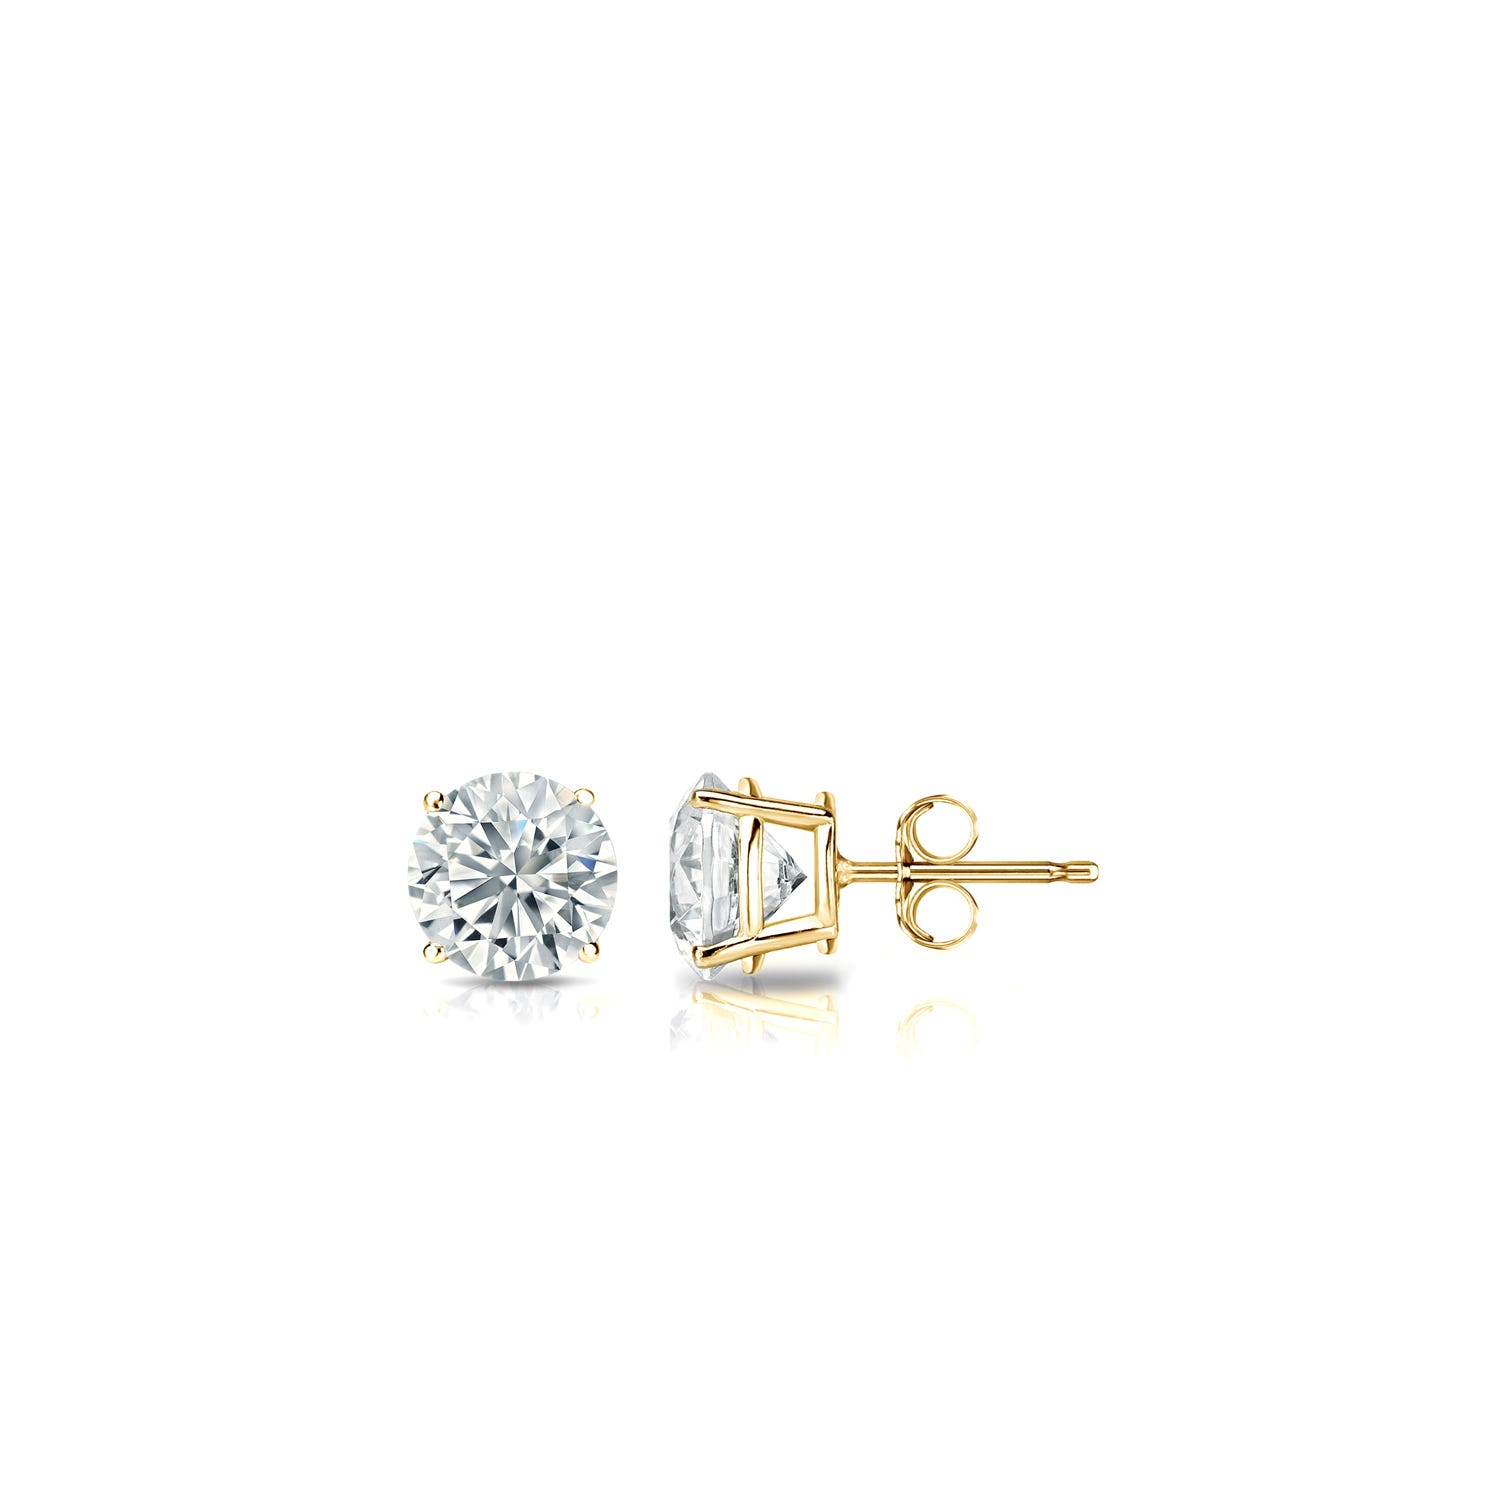 Diamond 1/10ctw. Round Solitaire Stud Earrings (I-J, I2) 14k Yellow Gold